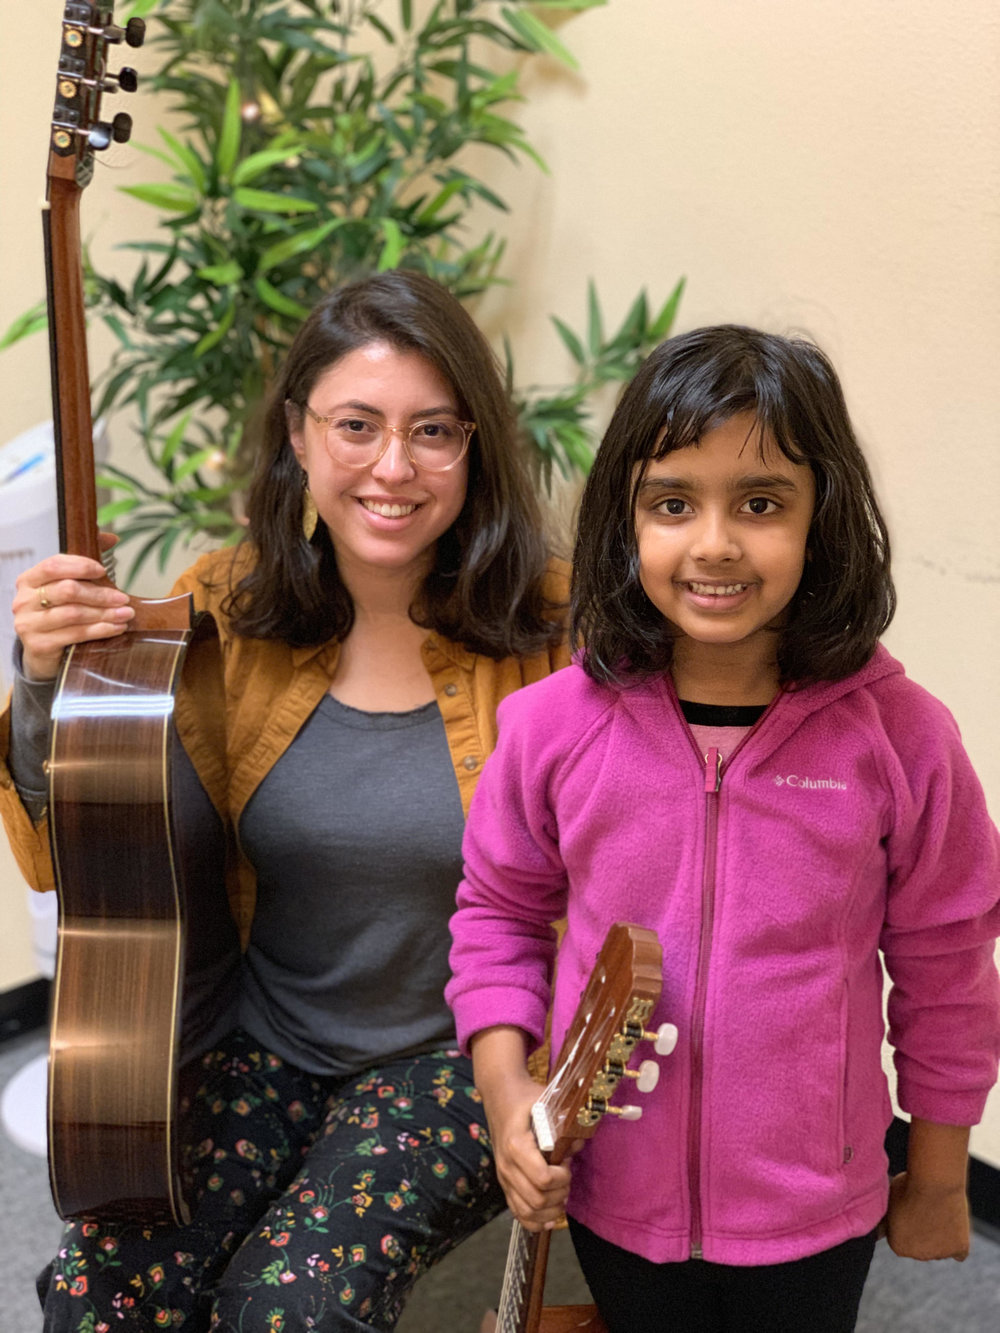 CCM Student Shanaya at her Santa Clara Music Lessons studying guitar